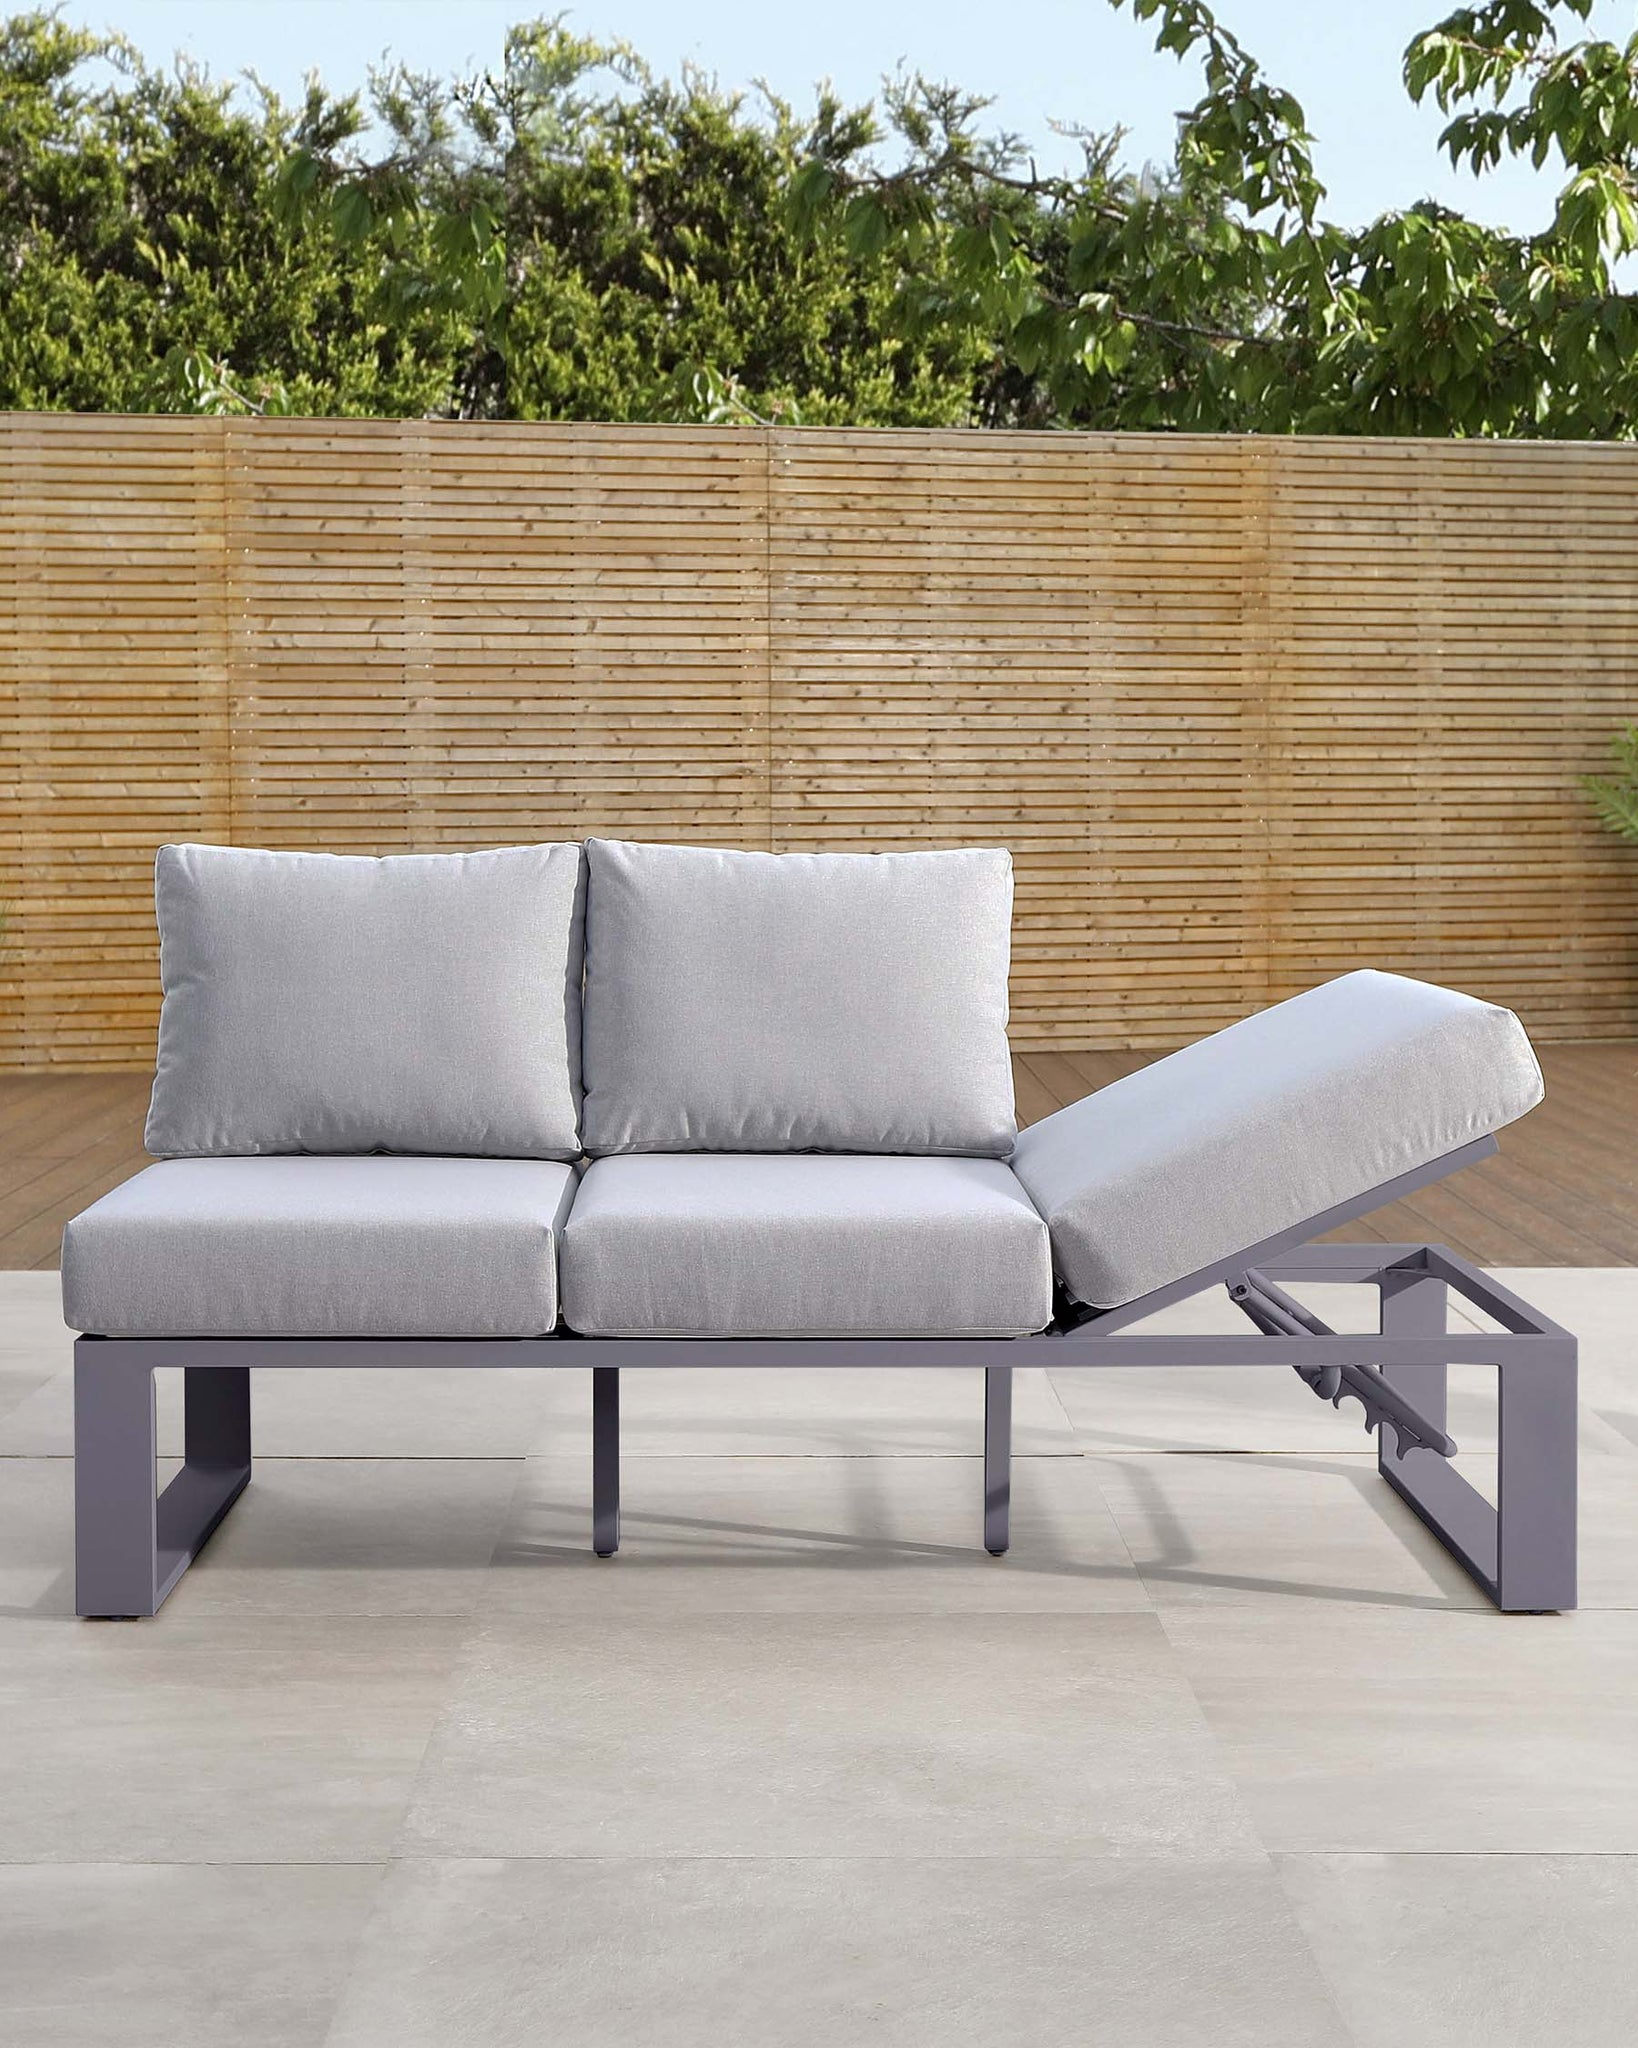 Savannah Grey Lift-up Garden Daybed